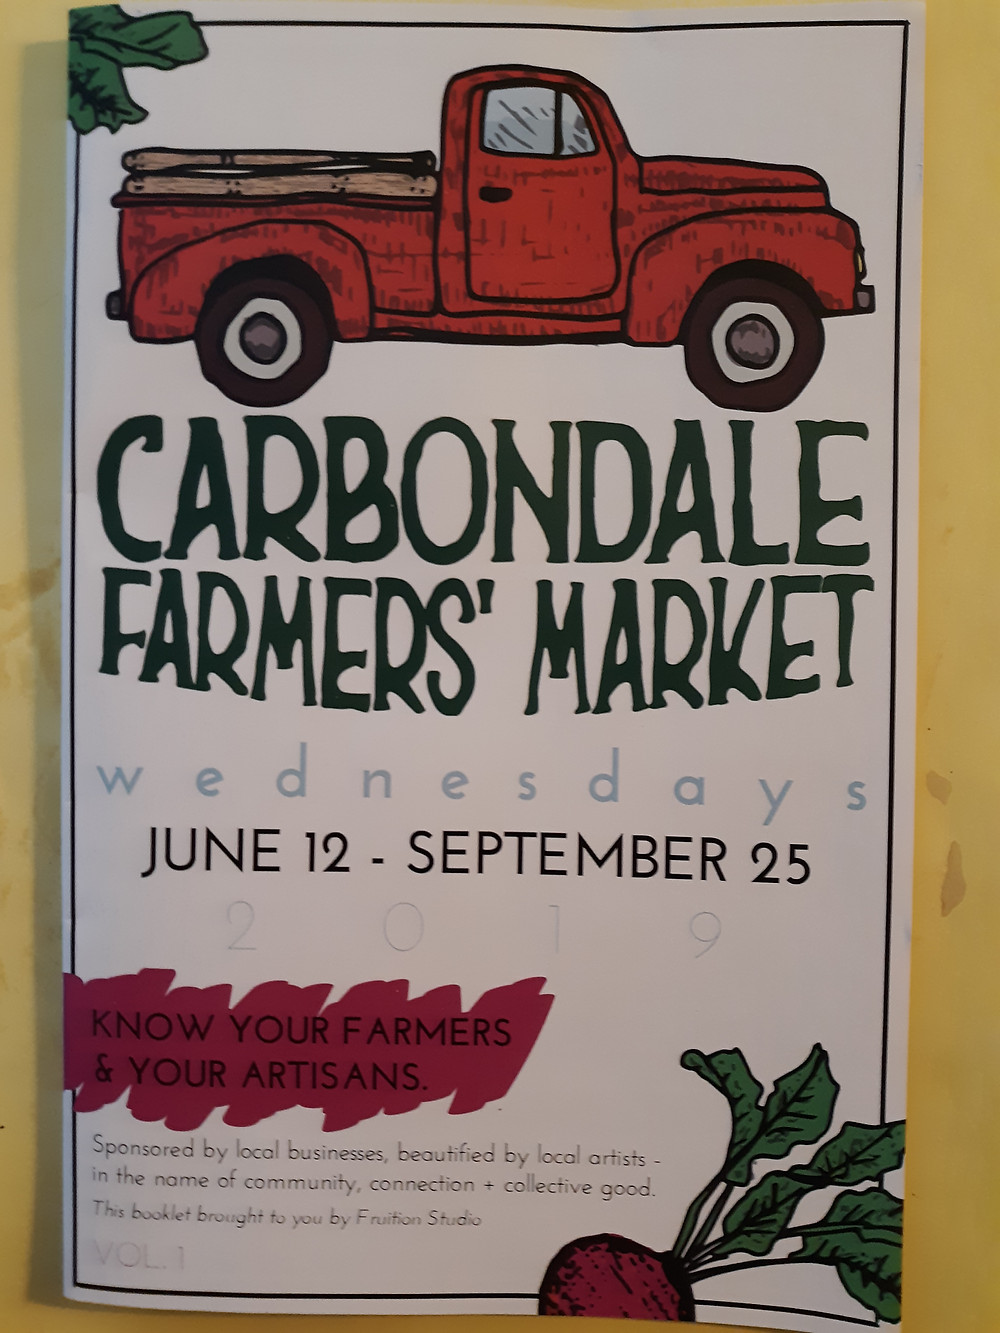 First published in 2019 Carbondale Farmers' Market brochure